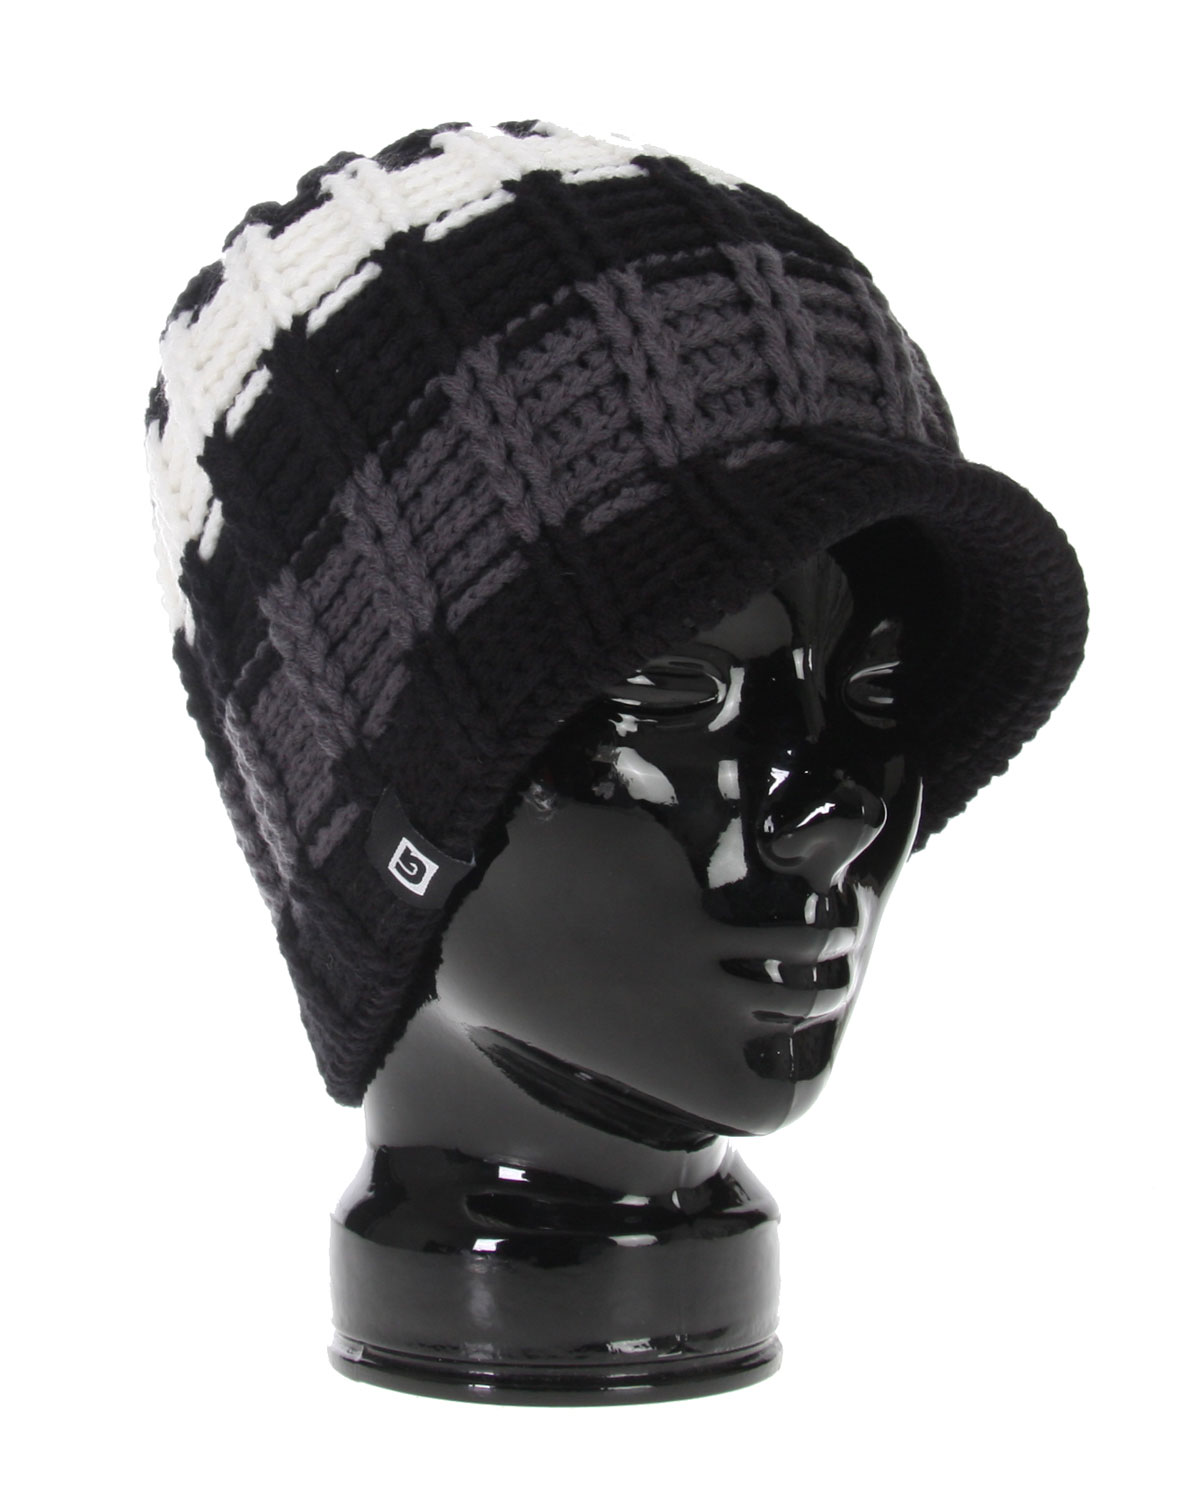 Snowboard The Burton Sabbatical Beanie - 100% Acrylic / Striped Visor Beanie / Hand Knit / Skully Fit - $16.77